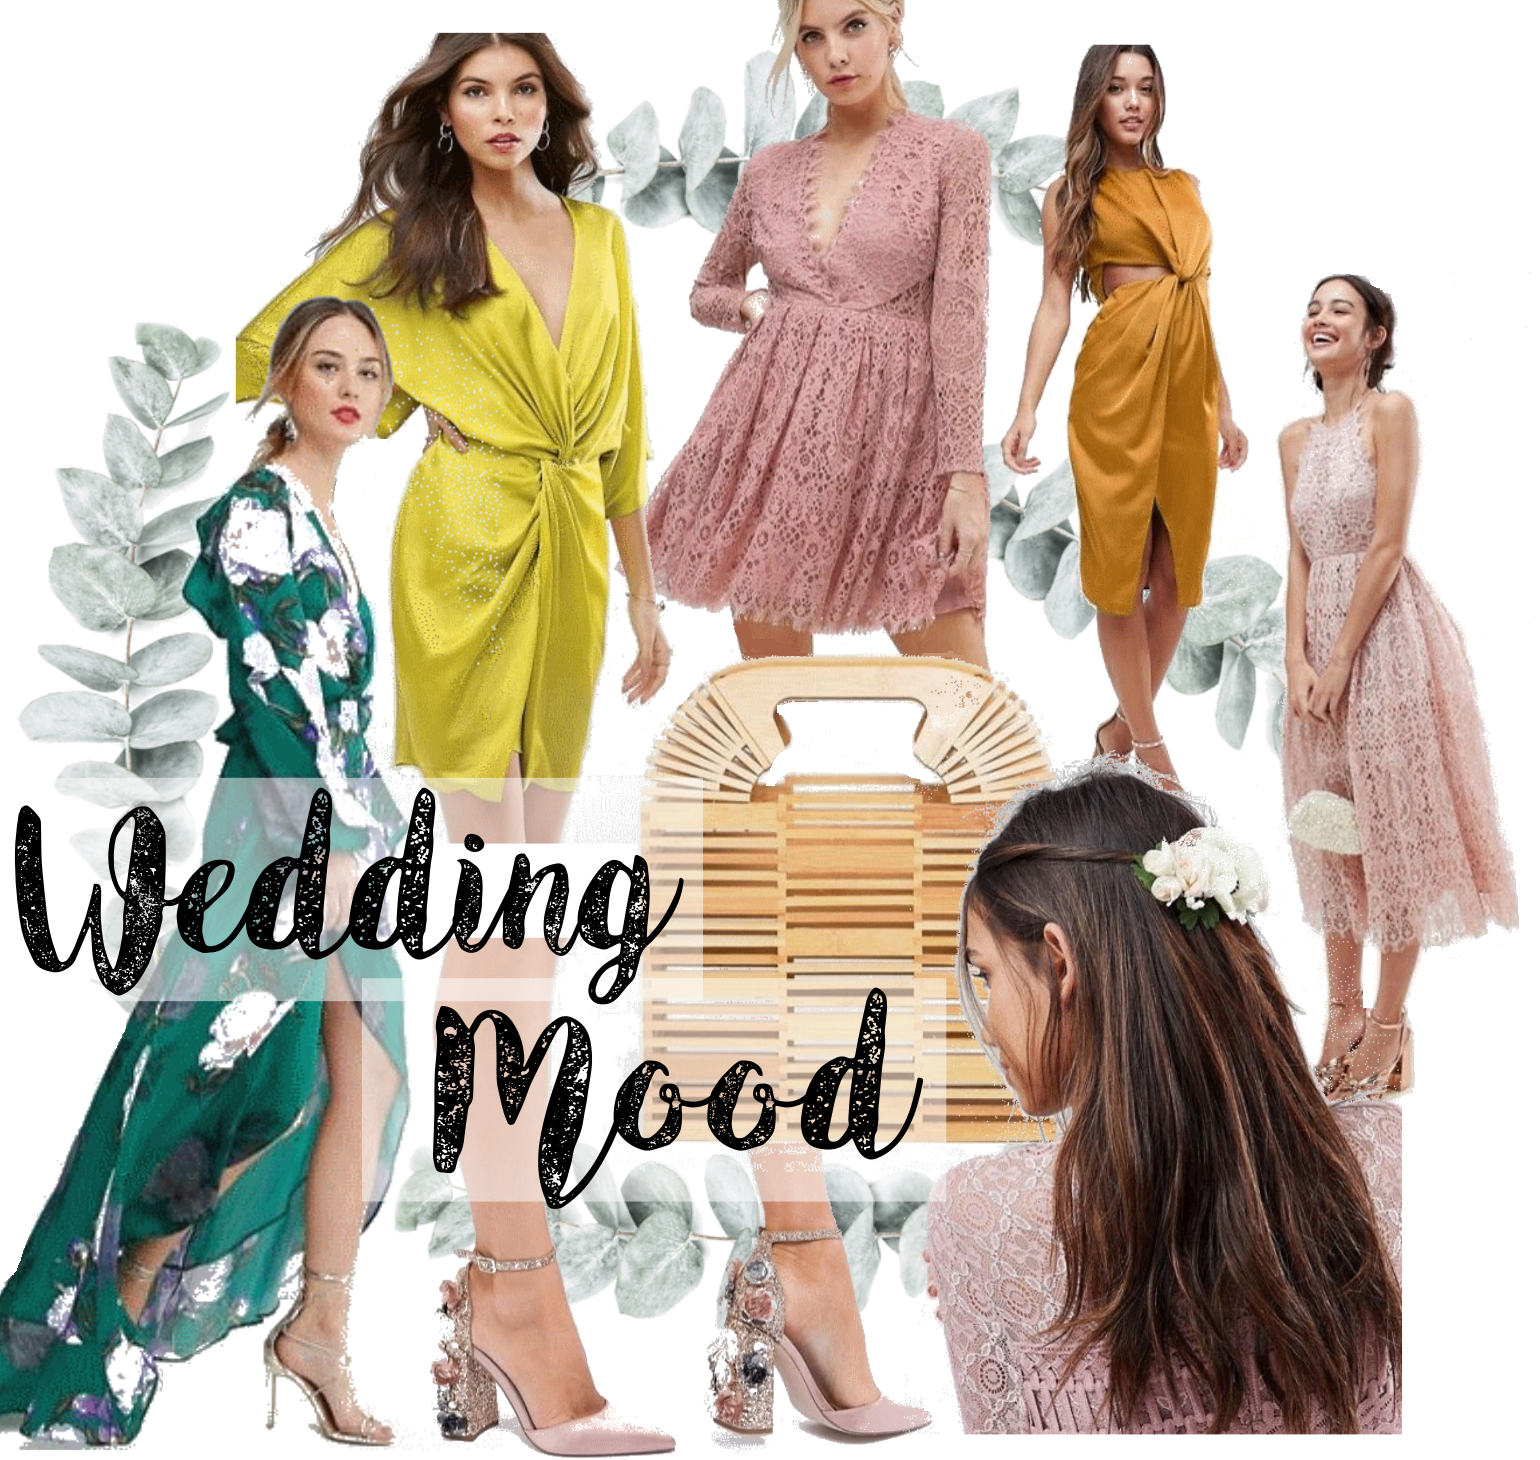 pauline-dress-selection-mode-mariage-wedding-day-demoiselle-d-honneur-robes-combi-ensembles-eucalyptus-blog-besancon-deco-lifestyle